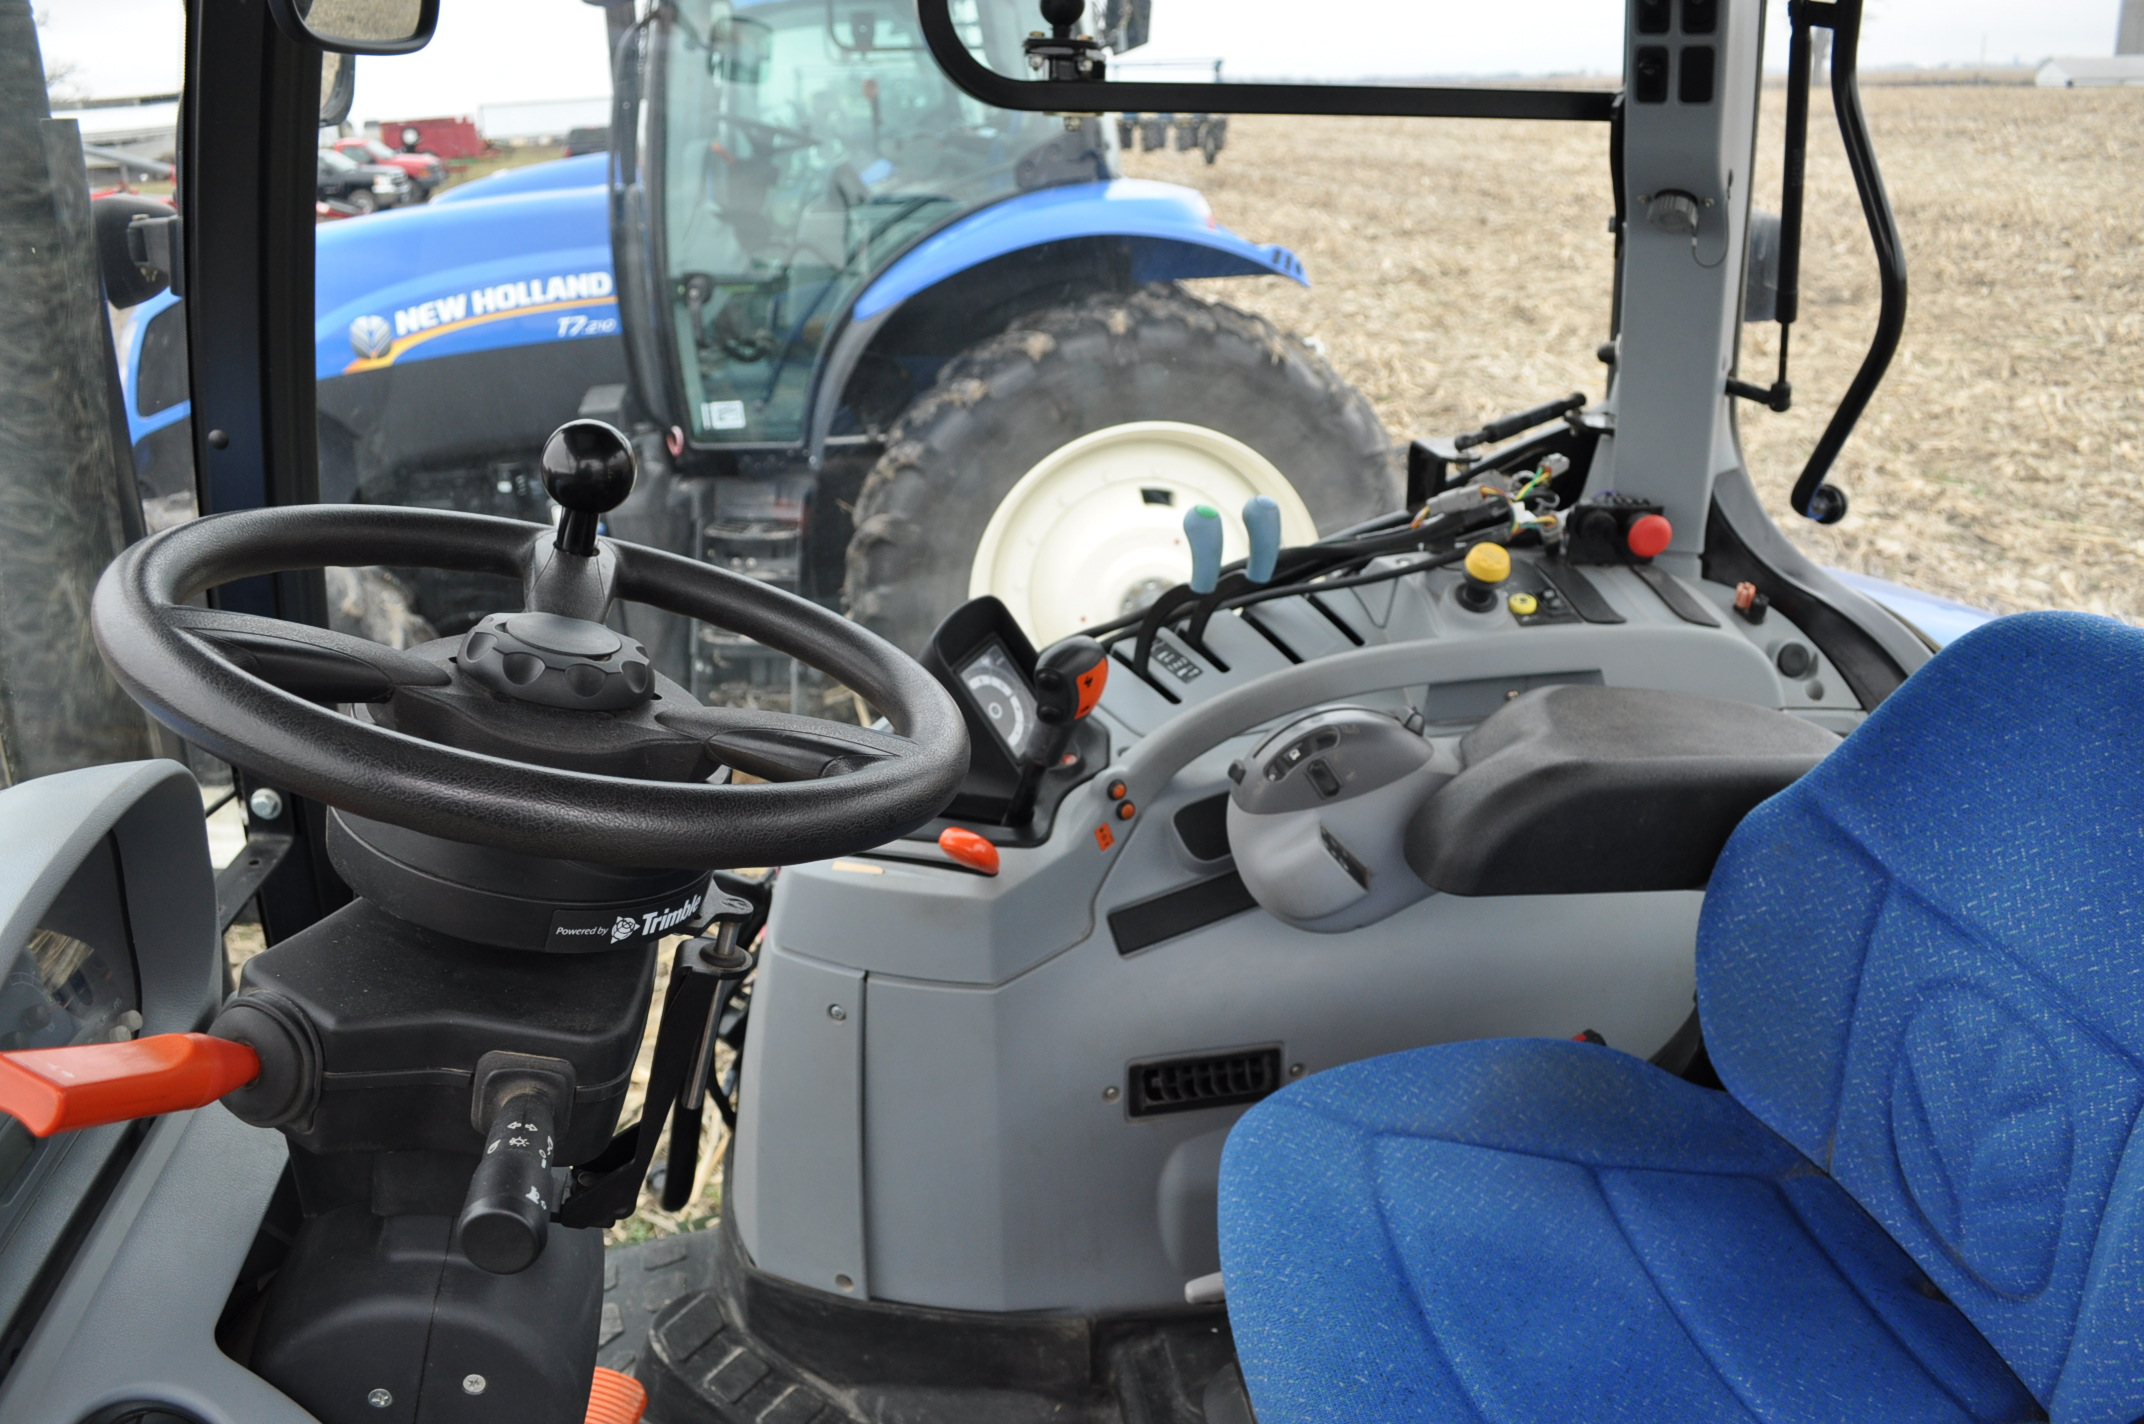 New Holland T6030 tractor, CHA, 16.9 R 38 tires, 11.00-16 front, 6 front wts, 3 hyd remotes, 3 pt, - Image 14 of 21